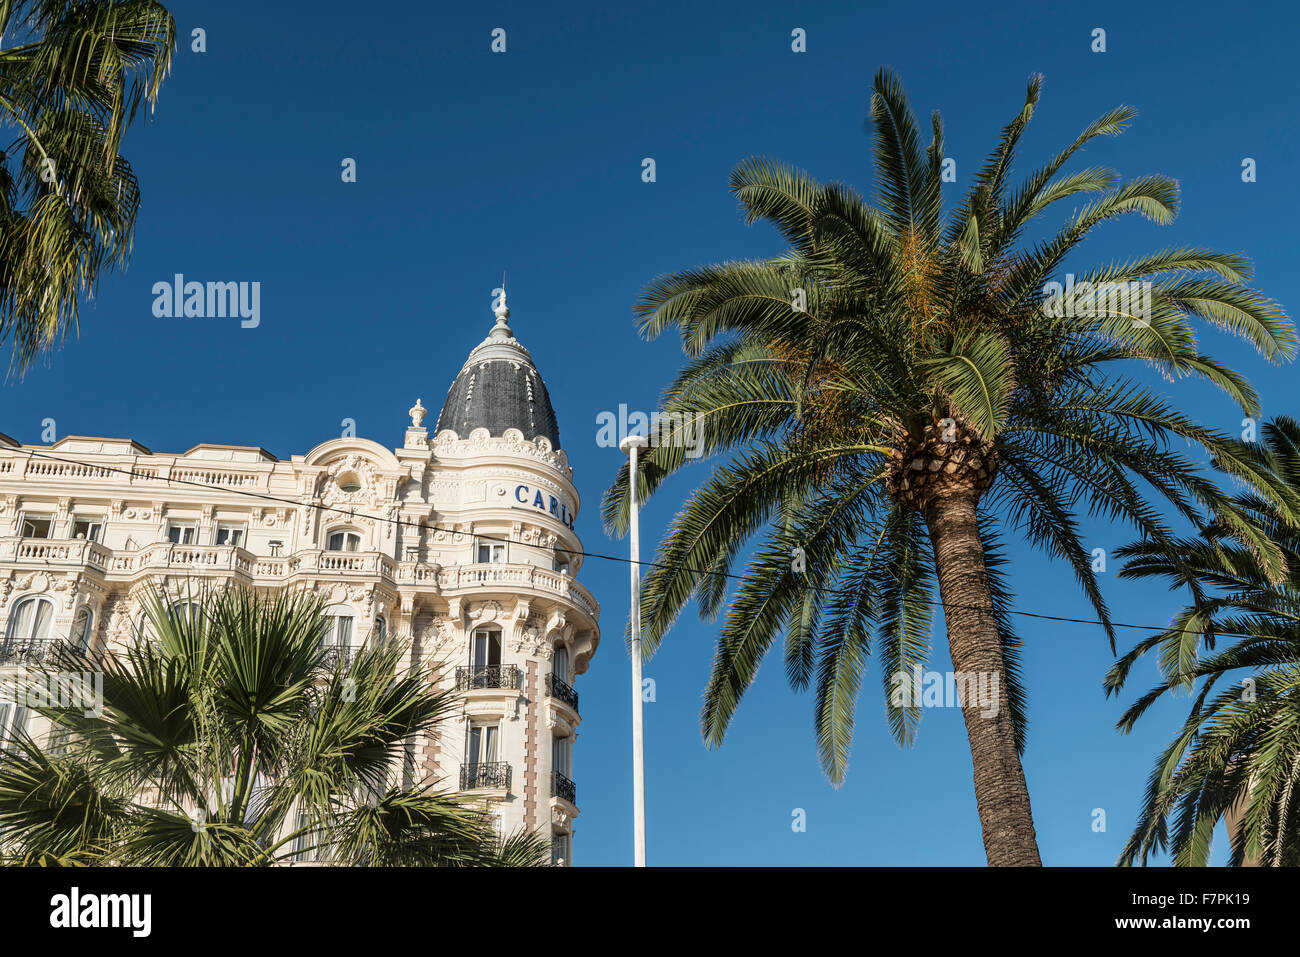 Carlton, Hotel, Facade, Palm tree, Cannes, - Stock Image